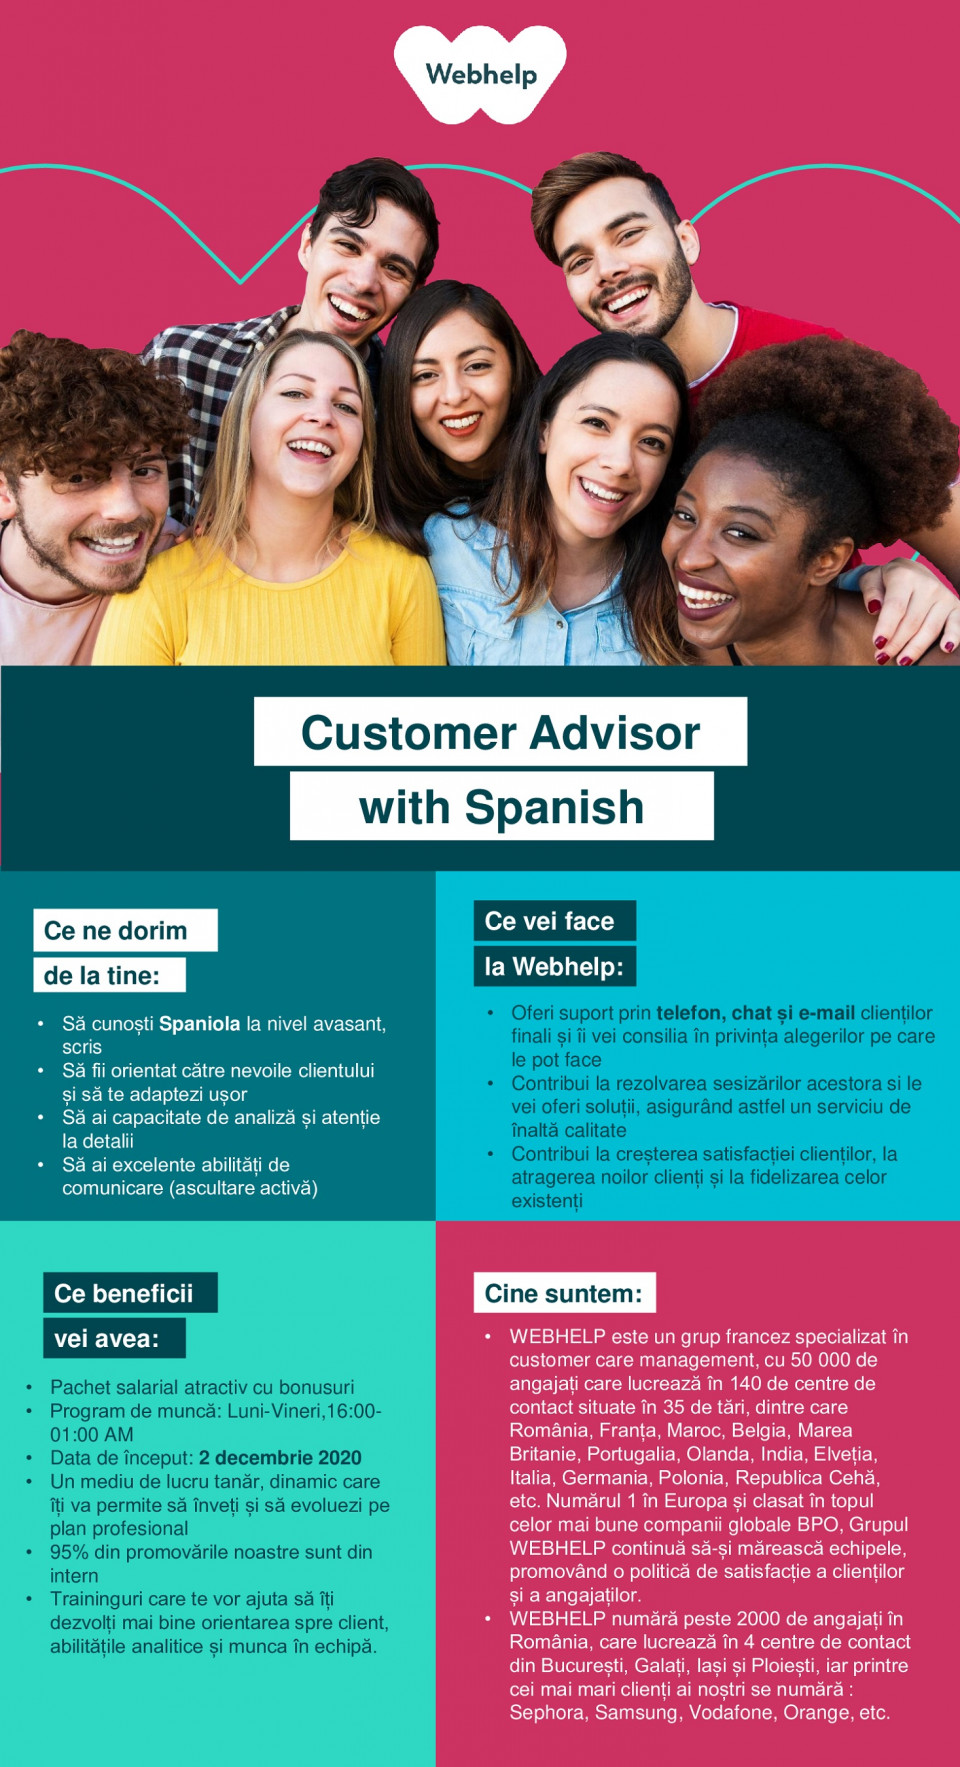 call center, relationare clienti, customer support, advisor, customer care, spaniola  Customer Advisor with Spanish    Required profile:  • Customer oriented person, excellent communication skills (active listening), quick learner • Autonomous and with good PC skills • Proactive and a great team player What you will be doing: • Your role will be to offer customer service by providing information about client's accounts and the products they purchase. • You will provide solutions to client's issues in order to deliver excellent customer experience and create brand engagement. • You will be able to get involved in creating new processes and you will have the chance to be part of a new project from the beginning and in continuous developement • We offer you great income and a pleasant working from your home • 4800 Ron fixed salary + 450 Ron monthly performance bonus • Flexible schedule: Monday to Sunday (10 — 21) • We want you to be successful and to ensure you maximize your earnings, you will be fully trained and supported by a company renowned for developing its staff.    Webhelp is a French group specialized in customer experience and business process outsourcing, with 50 000 employees working in 140 operations centers located in 36 countries. Number 1 in Europe and ranked in Top 7 Best Global BPO. Webhelp Group continues to increase its teams, promoting a policy of customer and employee satisfaction. Webhelp Romania is the Group's Digital Hub and the leading French employer in Romania. Founded in 2000, Webhelp Romania has been constantly growing, from 200 to more than 2000 team members, while delivering across 4 centers in Bucharest, Ploiesti, Galati, and Iasi. Our customer portfolio counts more than 30 brands. including: Samsung. Sephora, Bouygues Telecom, Orange. Vodafone, NN.